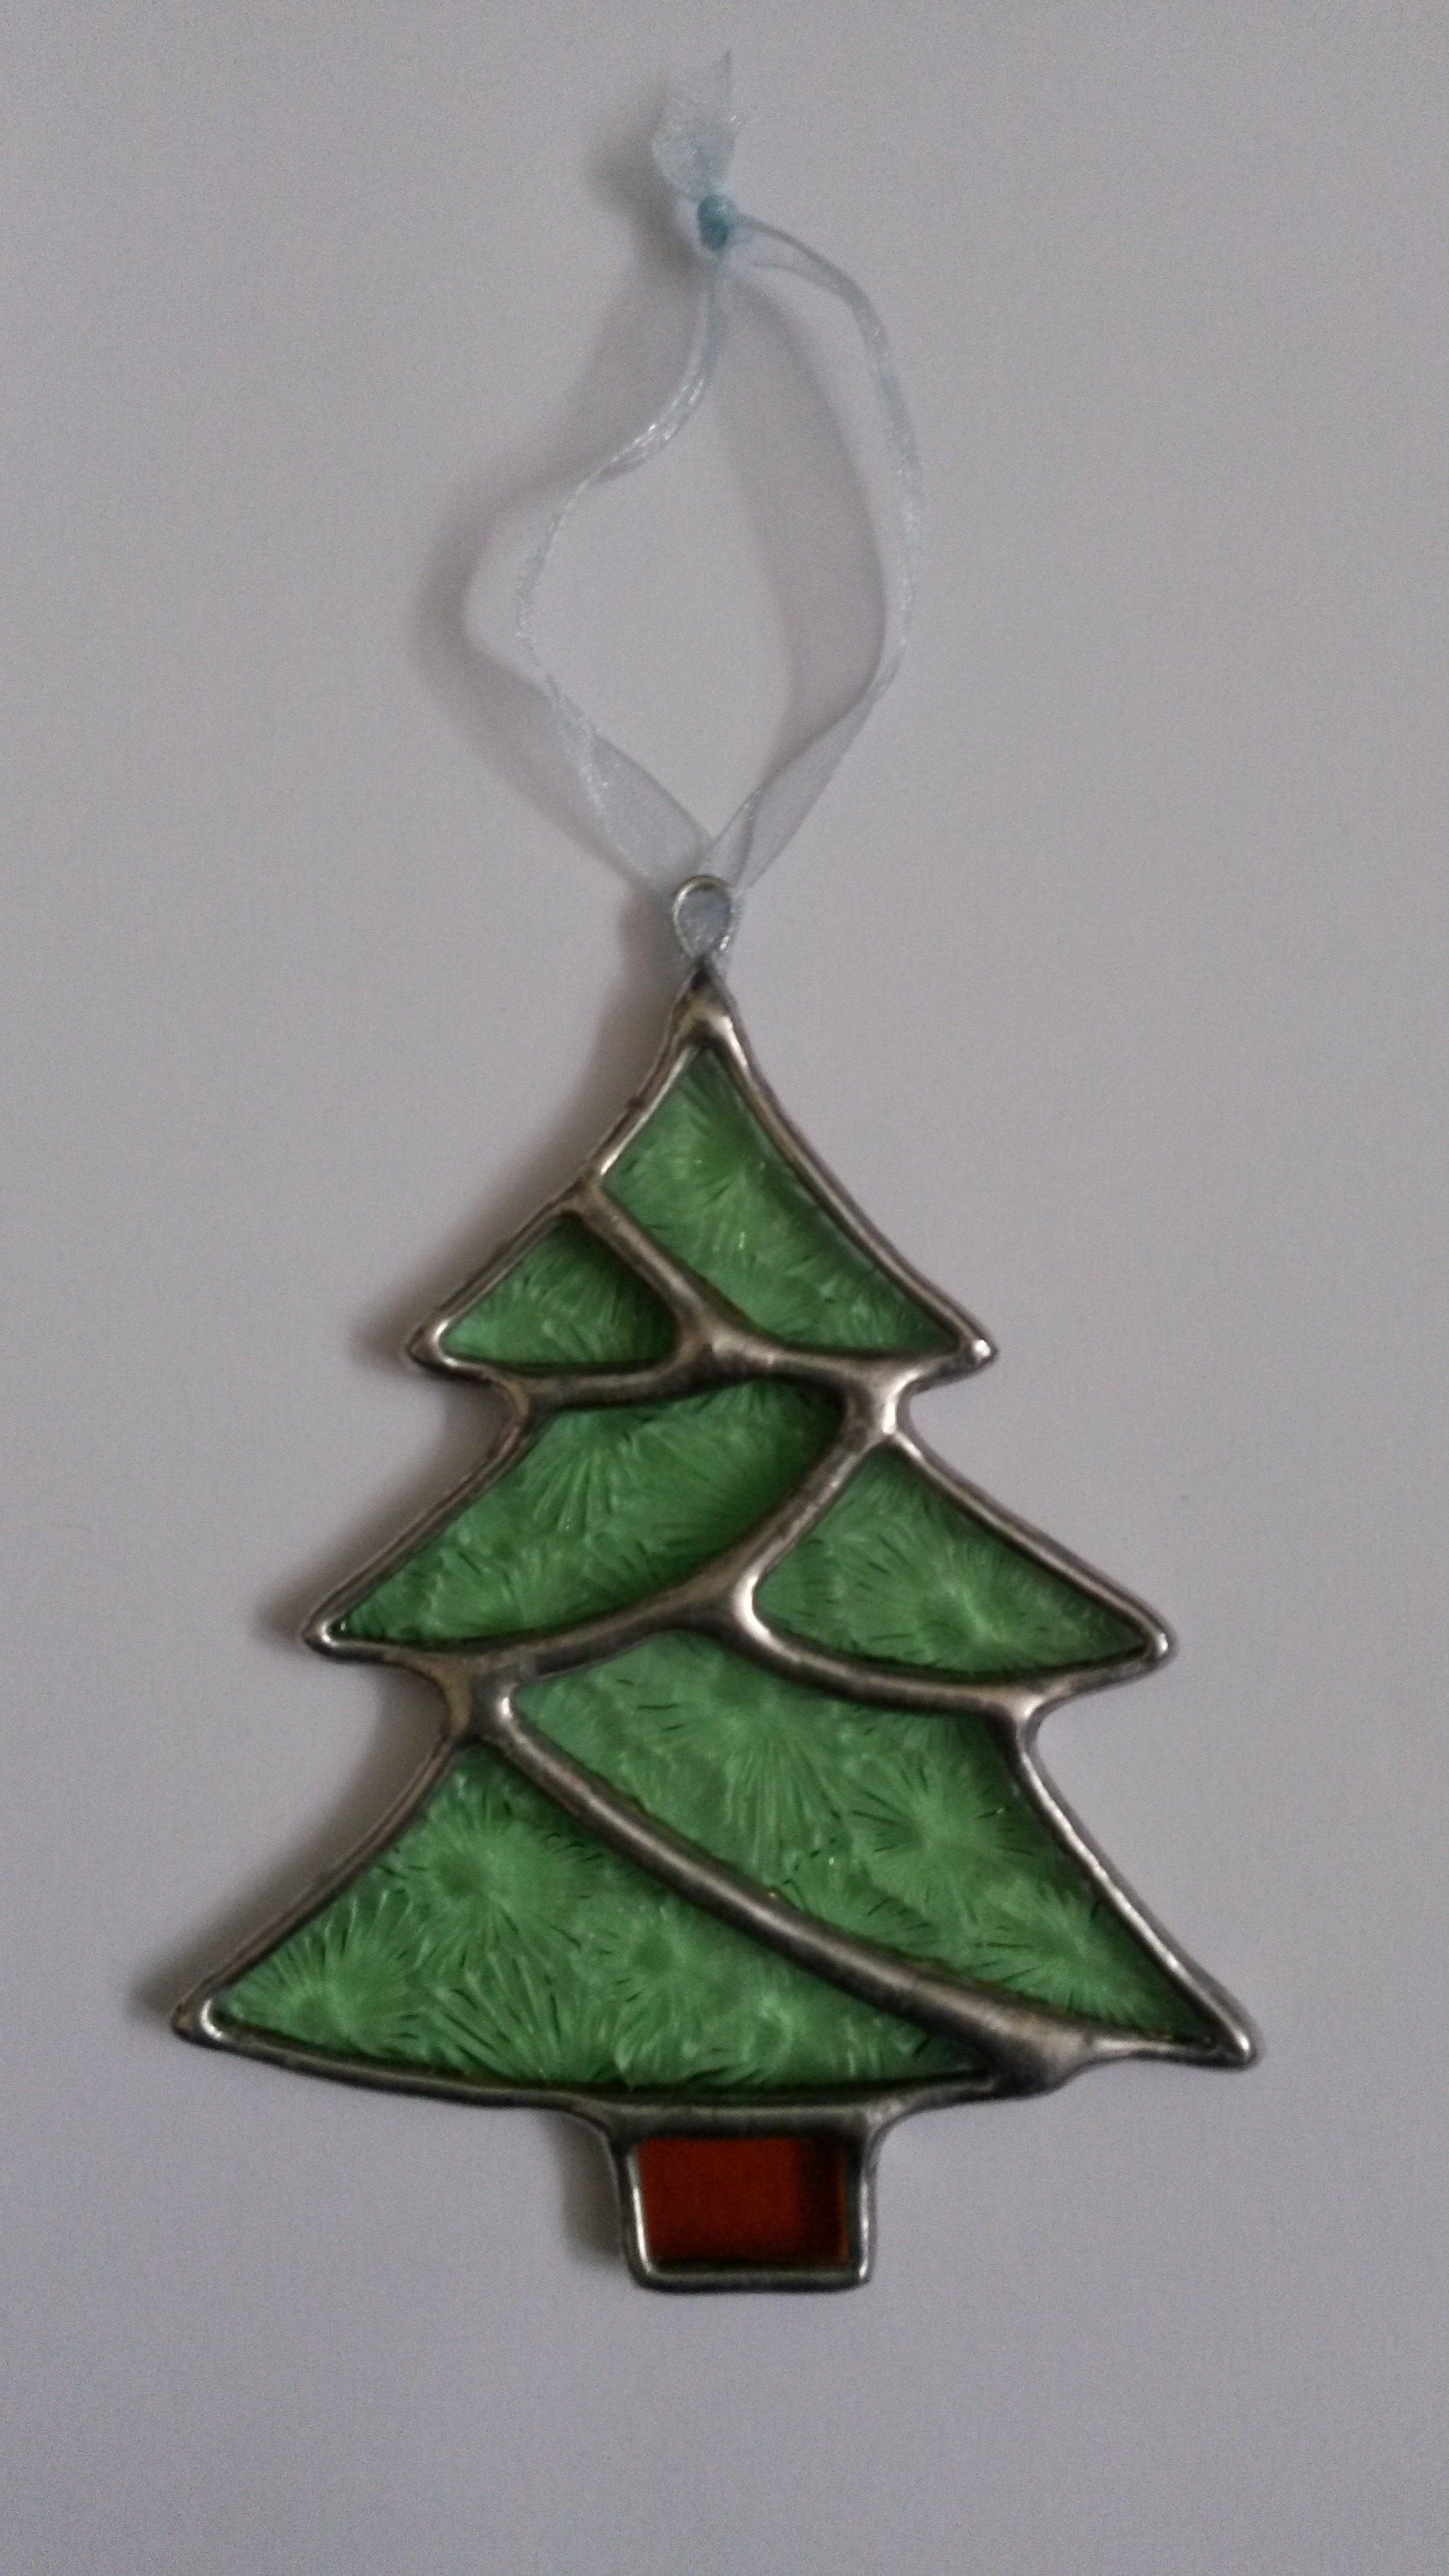 Christmas Tree Stained Glass Christmas Decoration Stained Glass Christmas Stained Glass Ornaments Stained Glass Diy